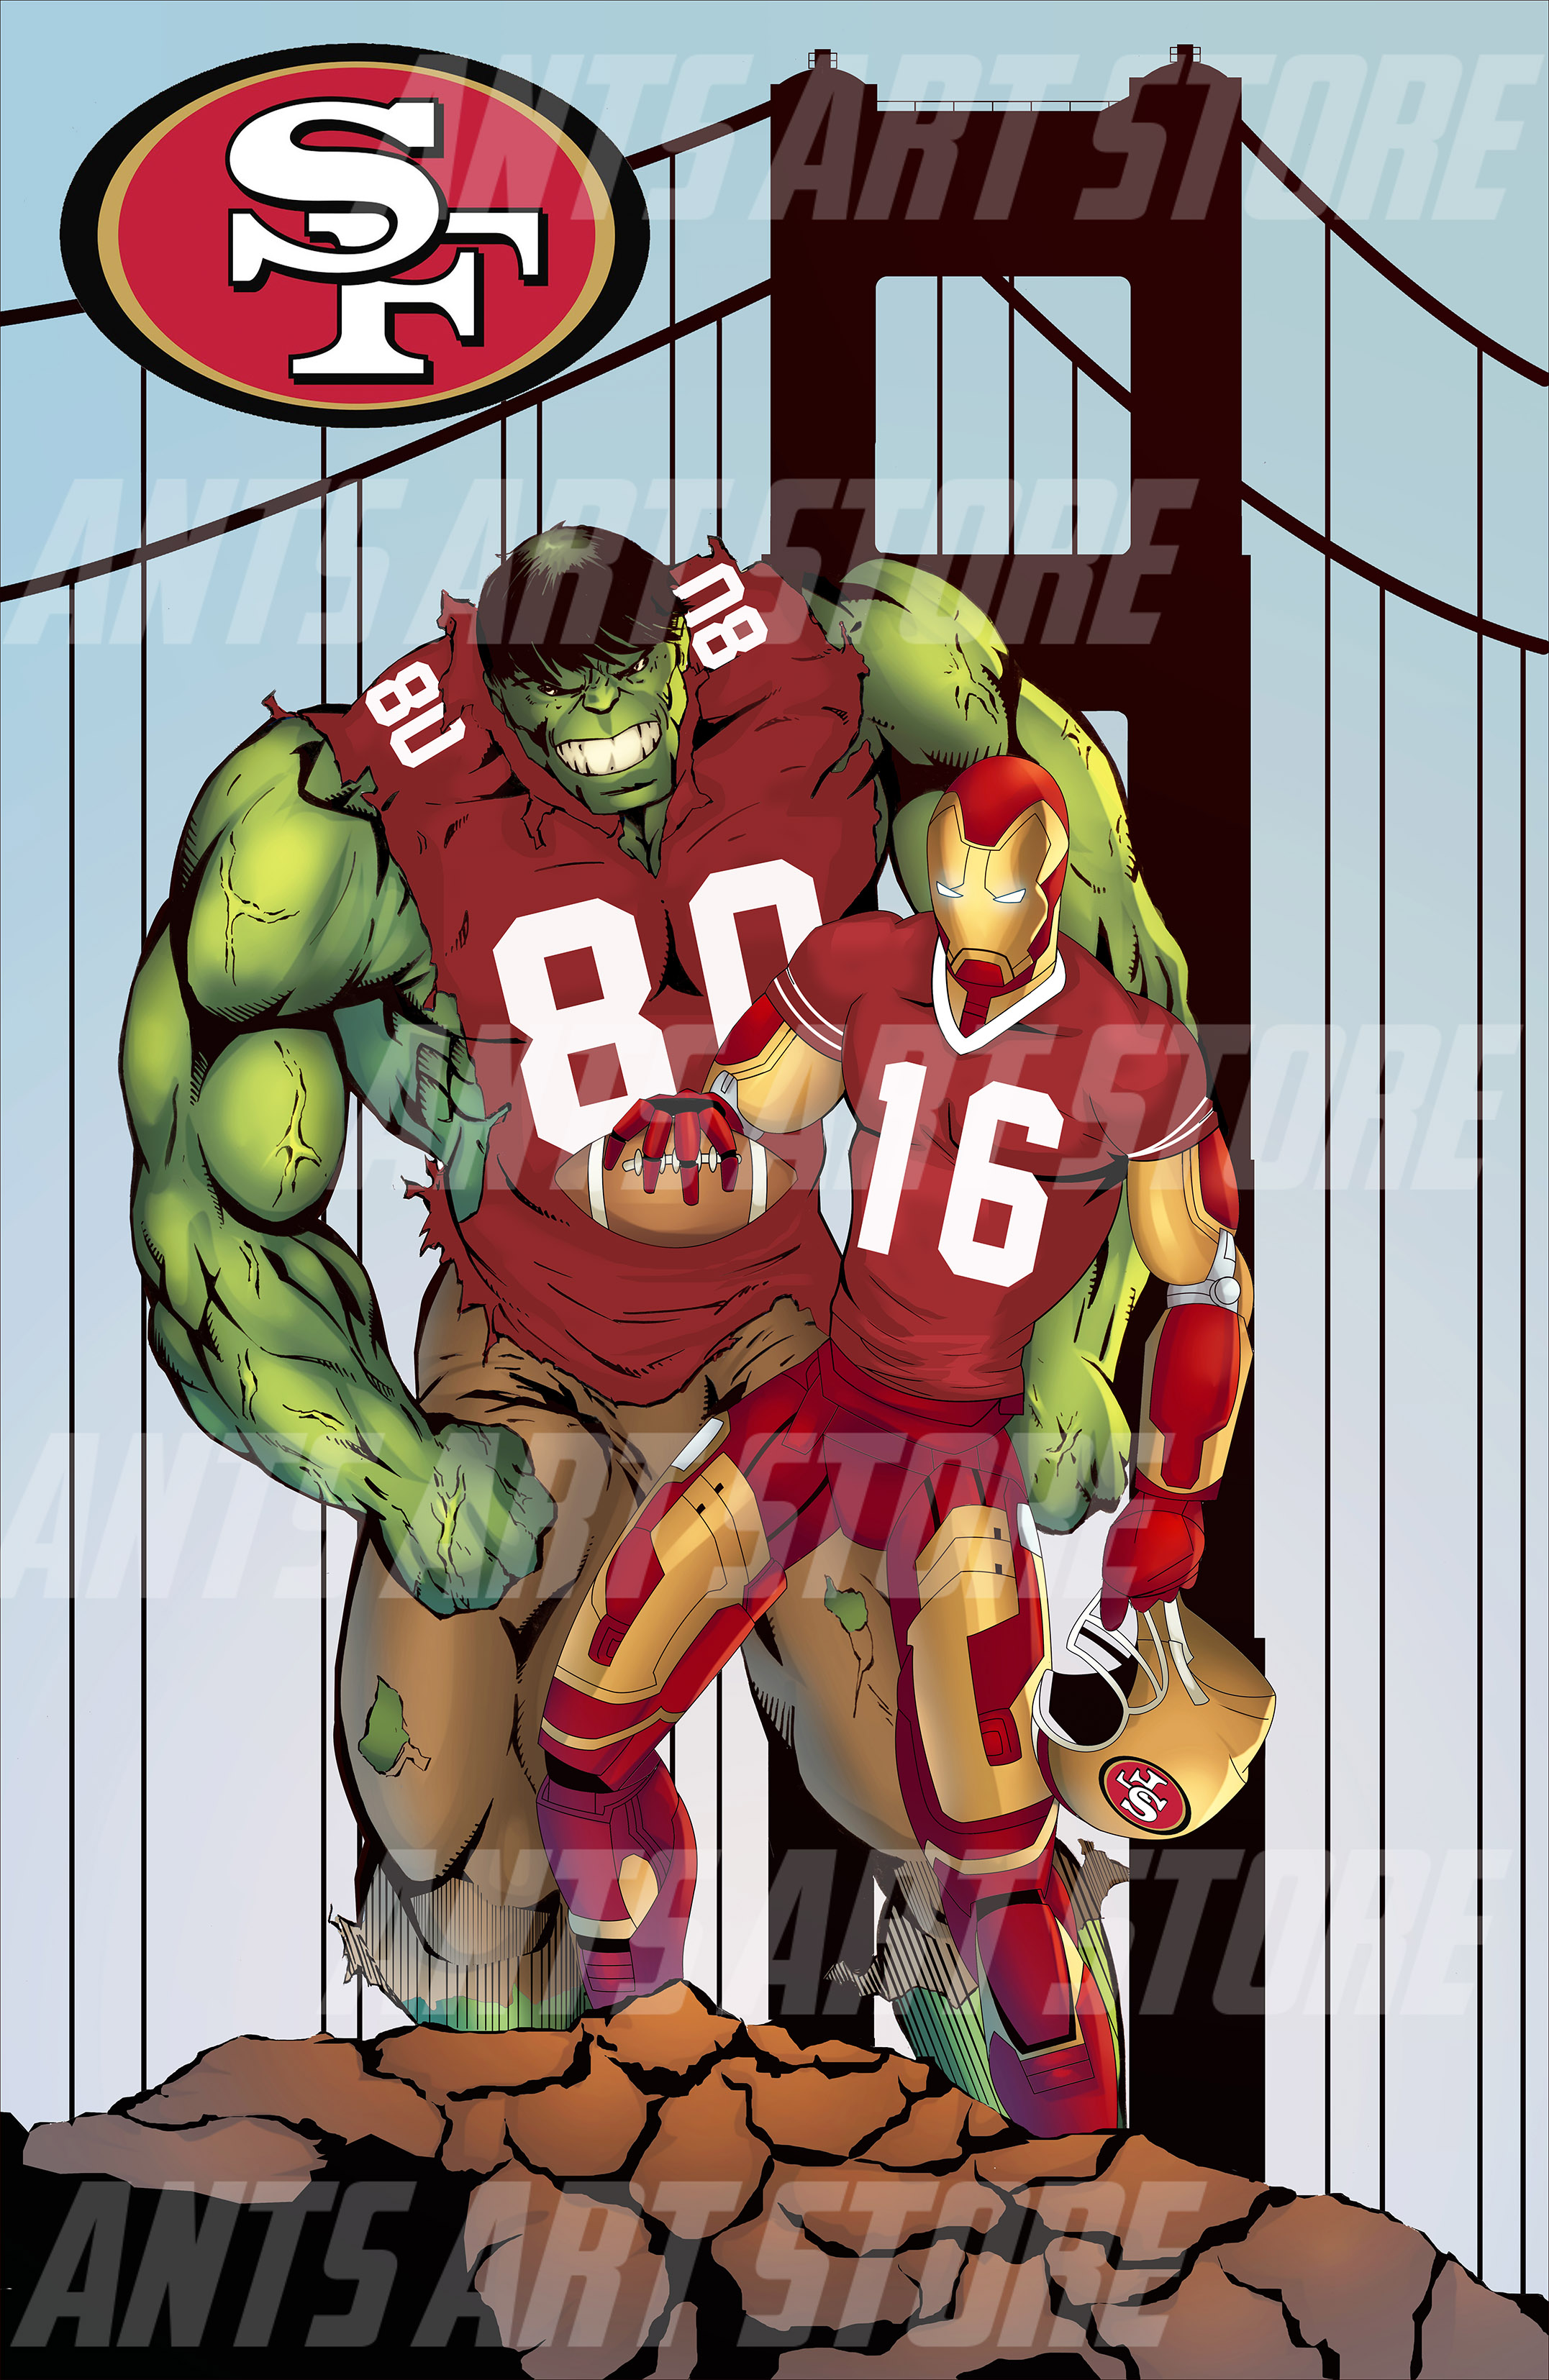 San francisco 49ers and the avengers on storenvy san francisco 49ers and the avengers voltagebd Choice Image